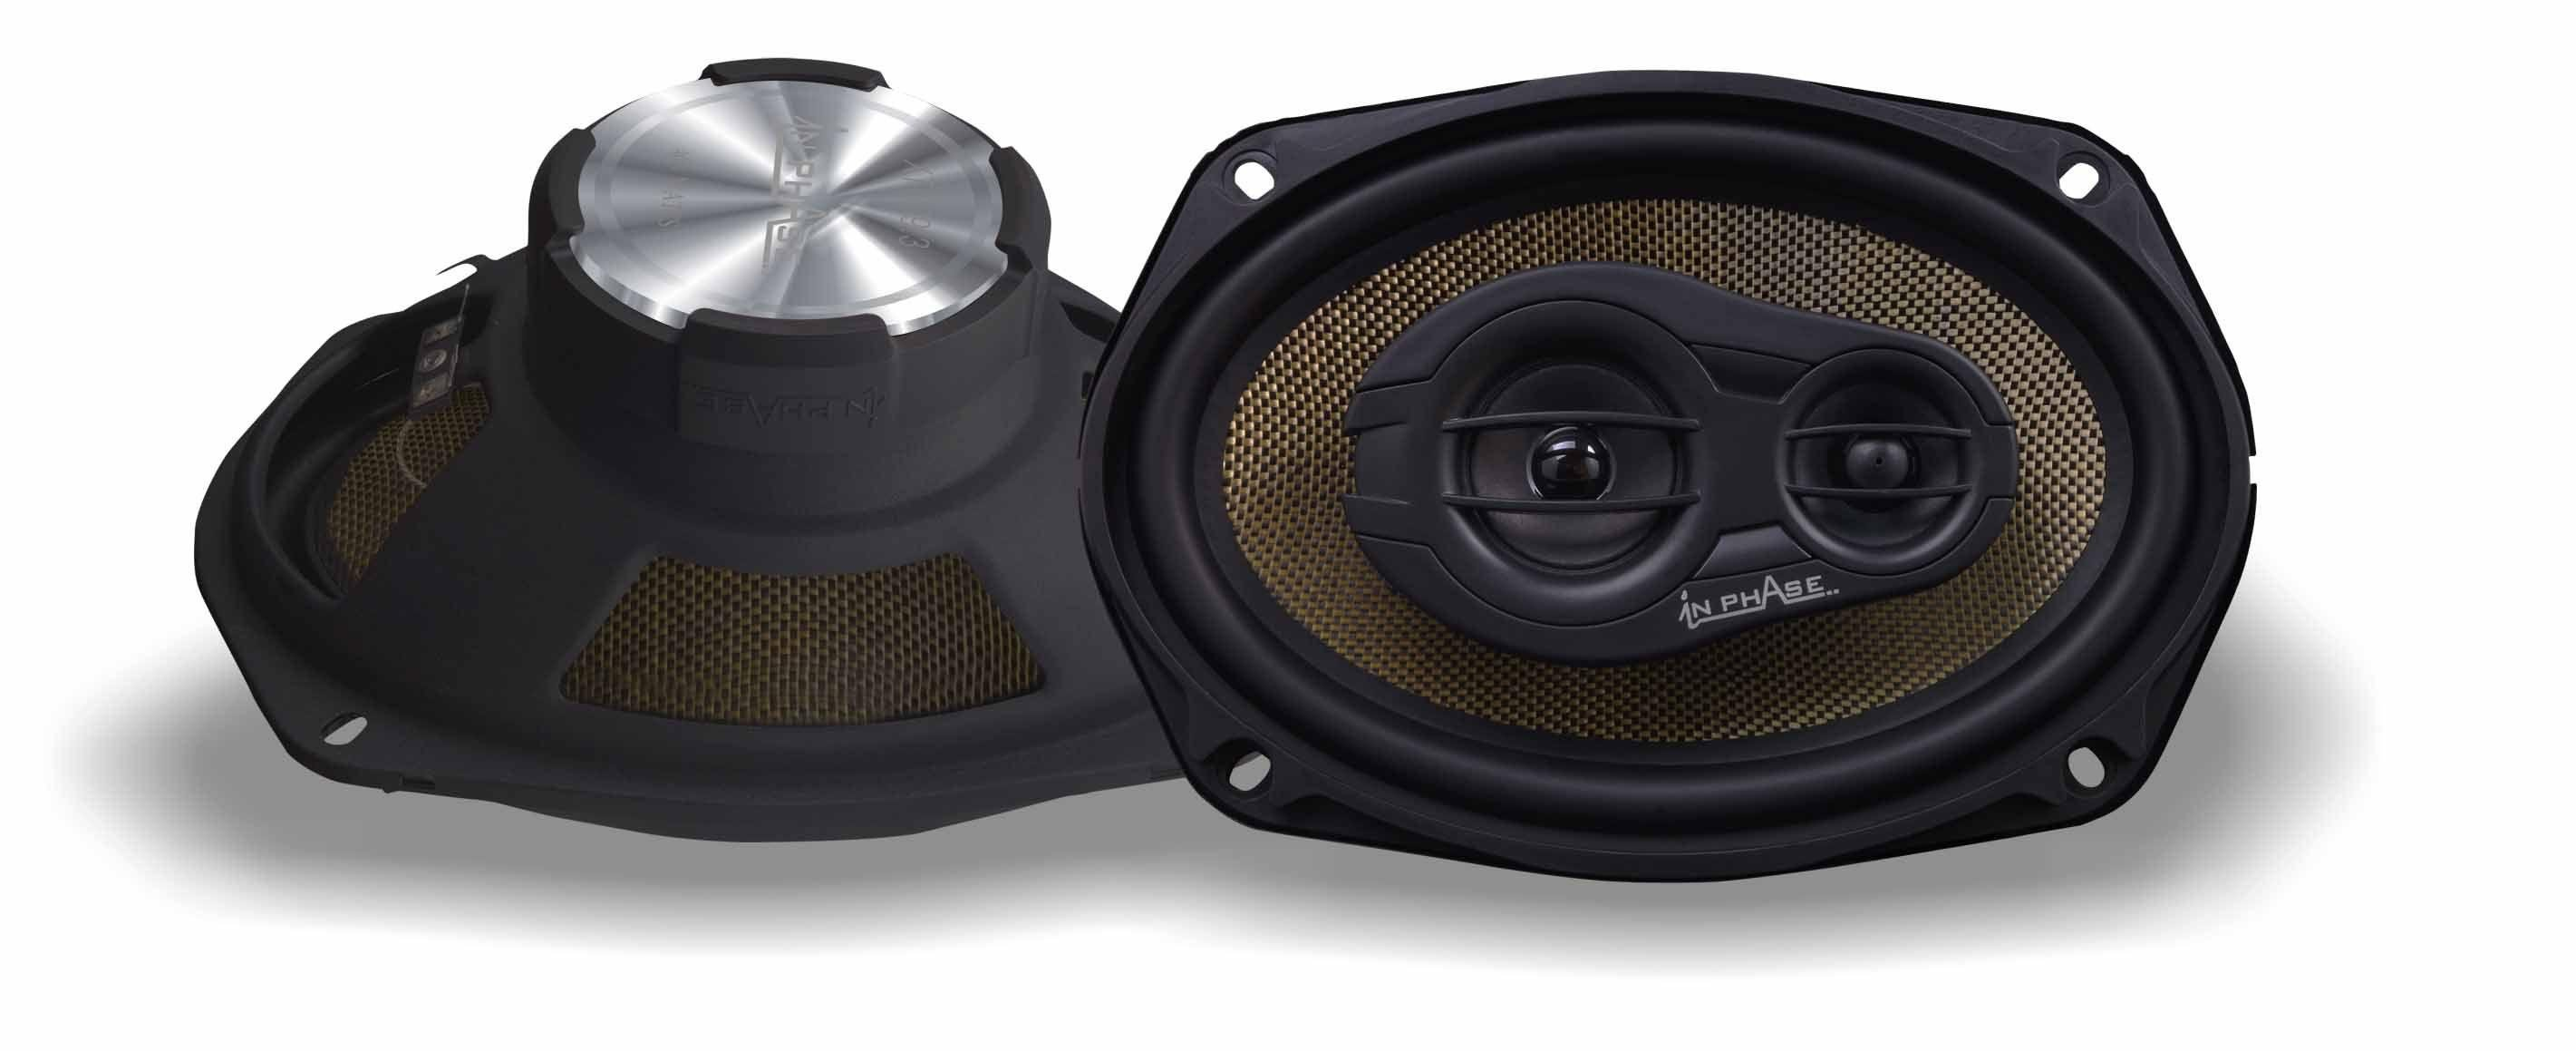 in-phase-xtc693-6x9-400-watts-3-way-speaker